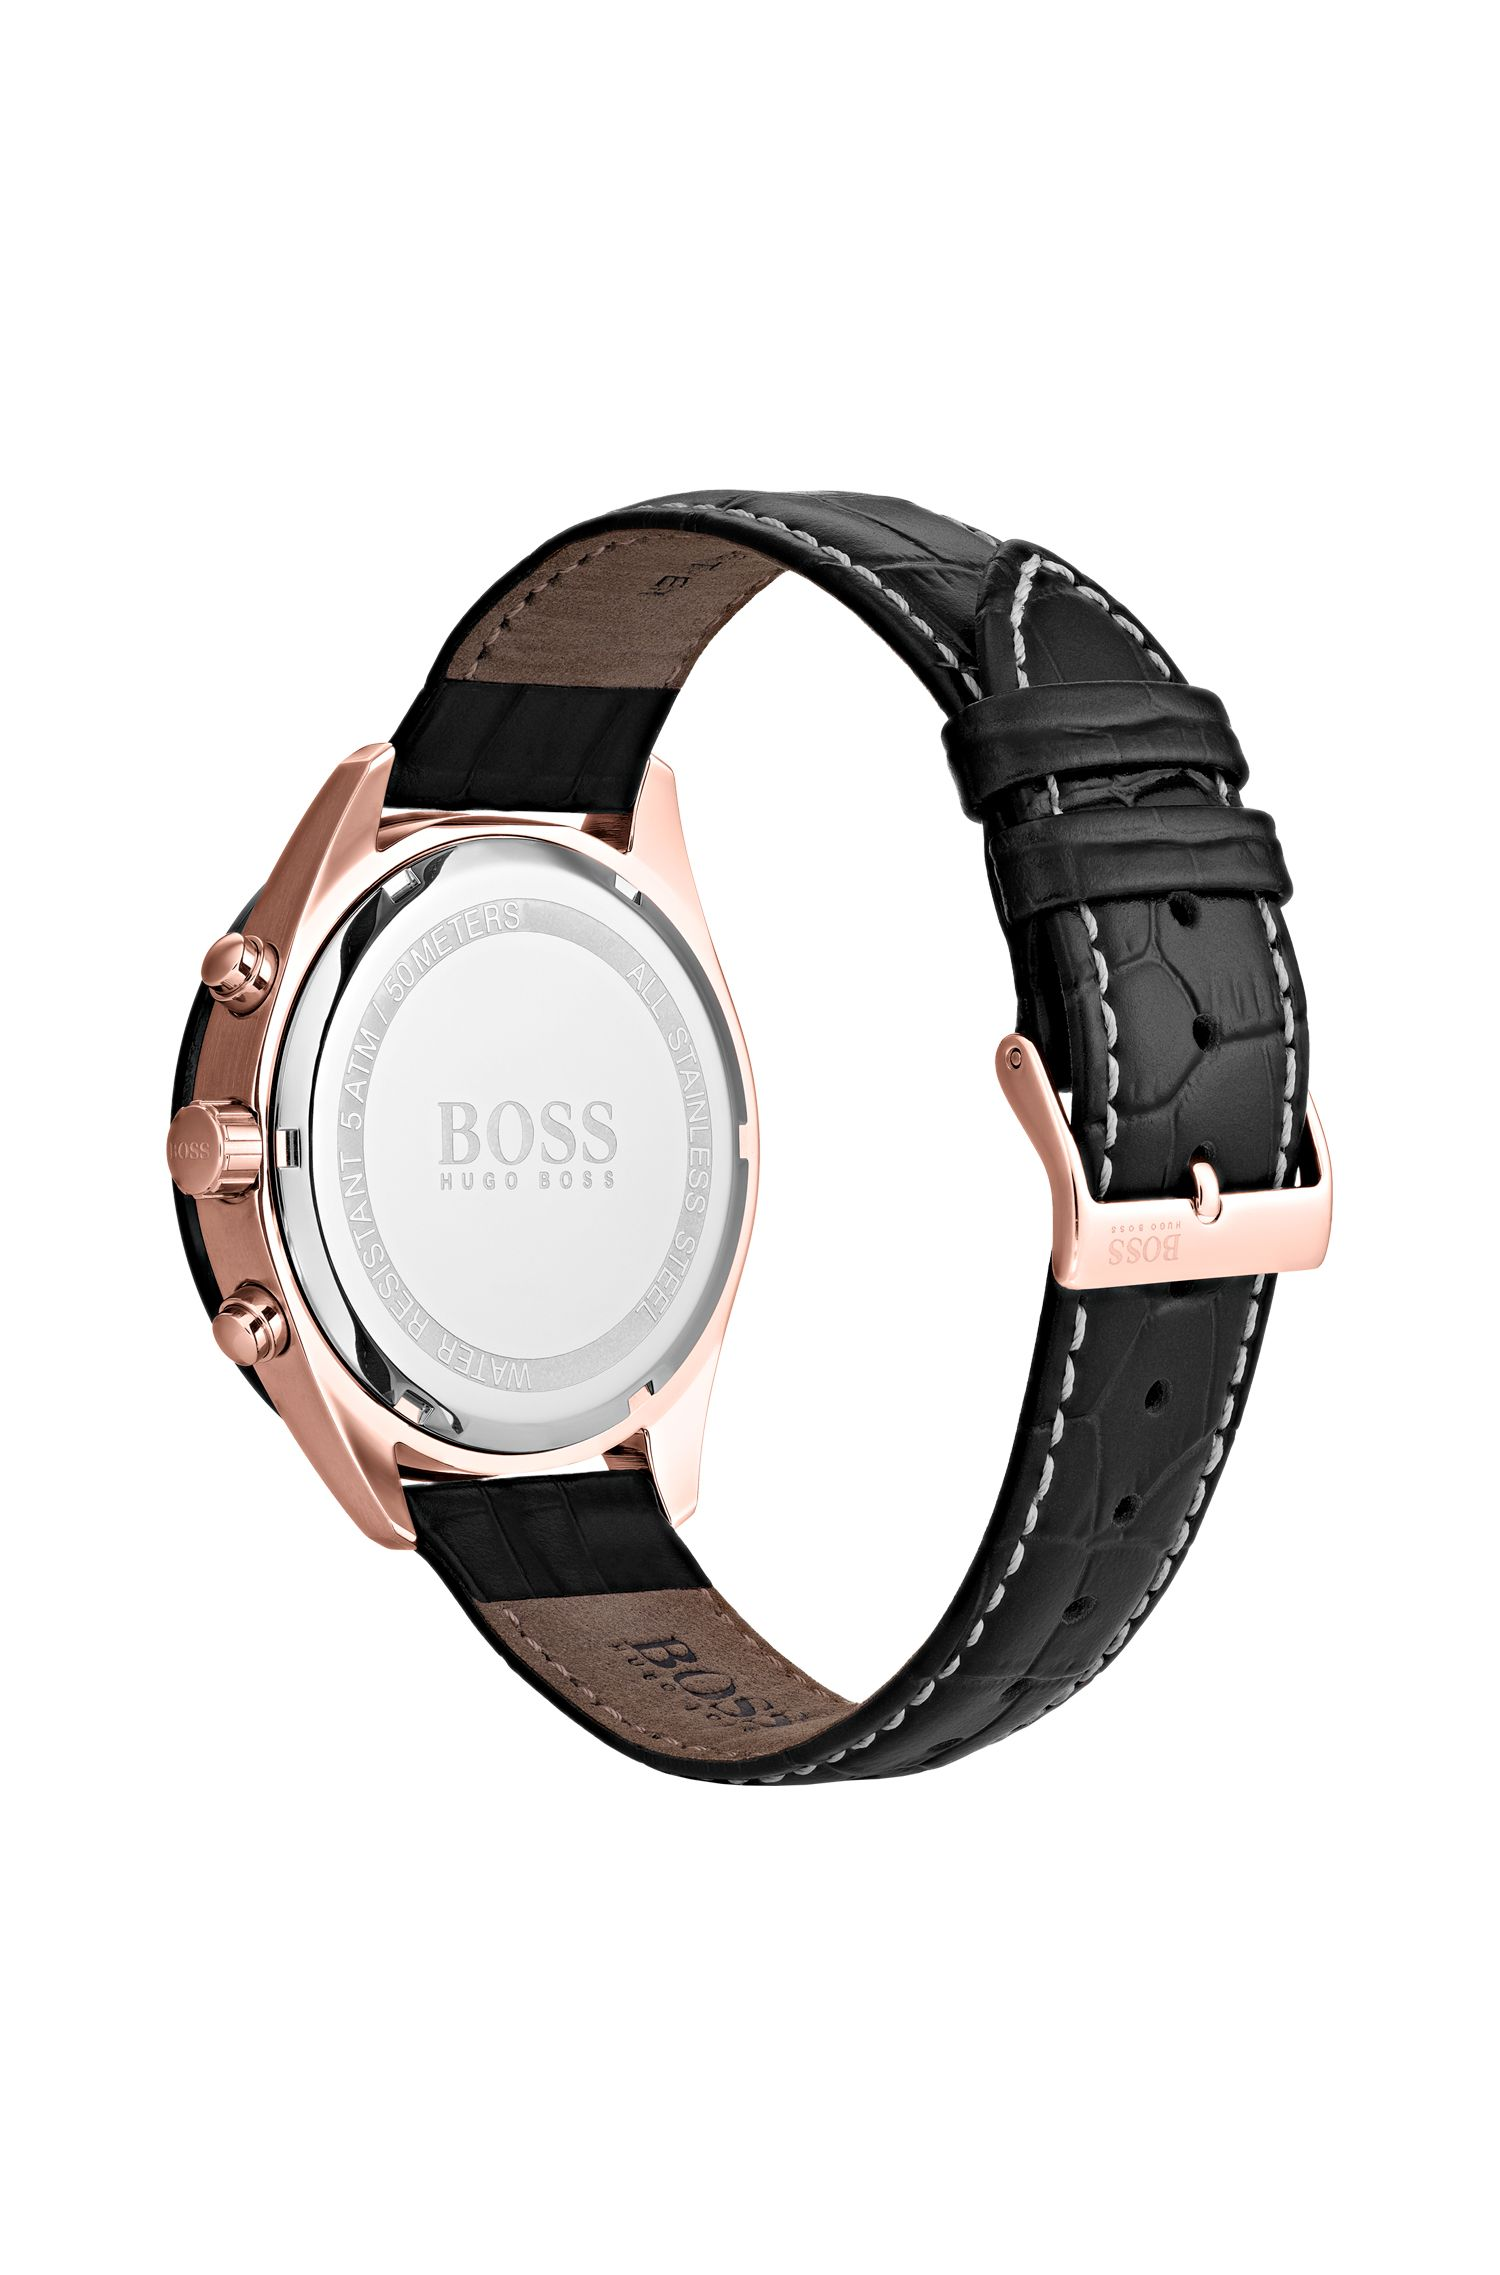 Montre chronographe au plaquage noir et or rose, Assorted-Pre-Pack